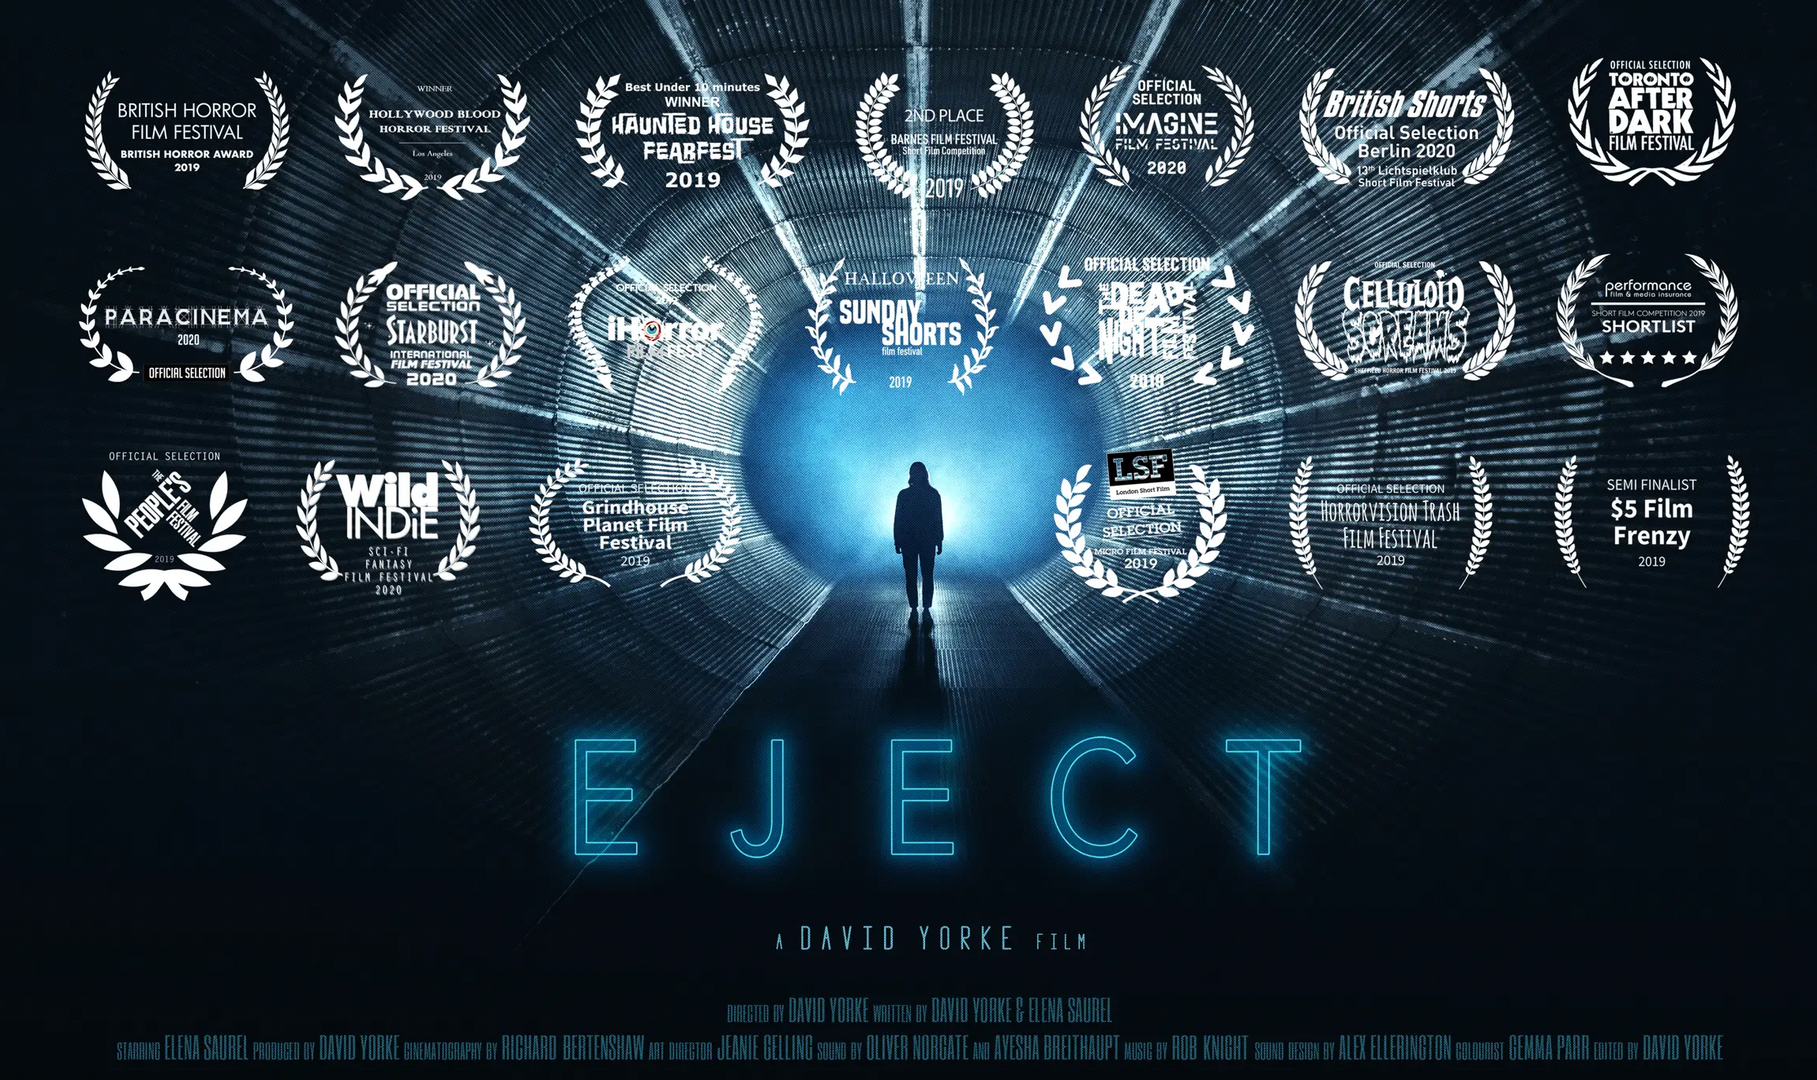 Eject - Short Film